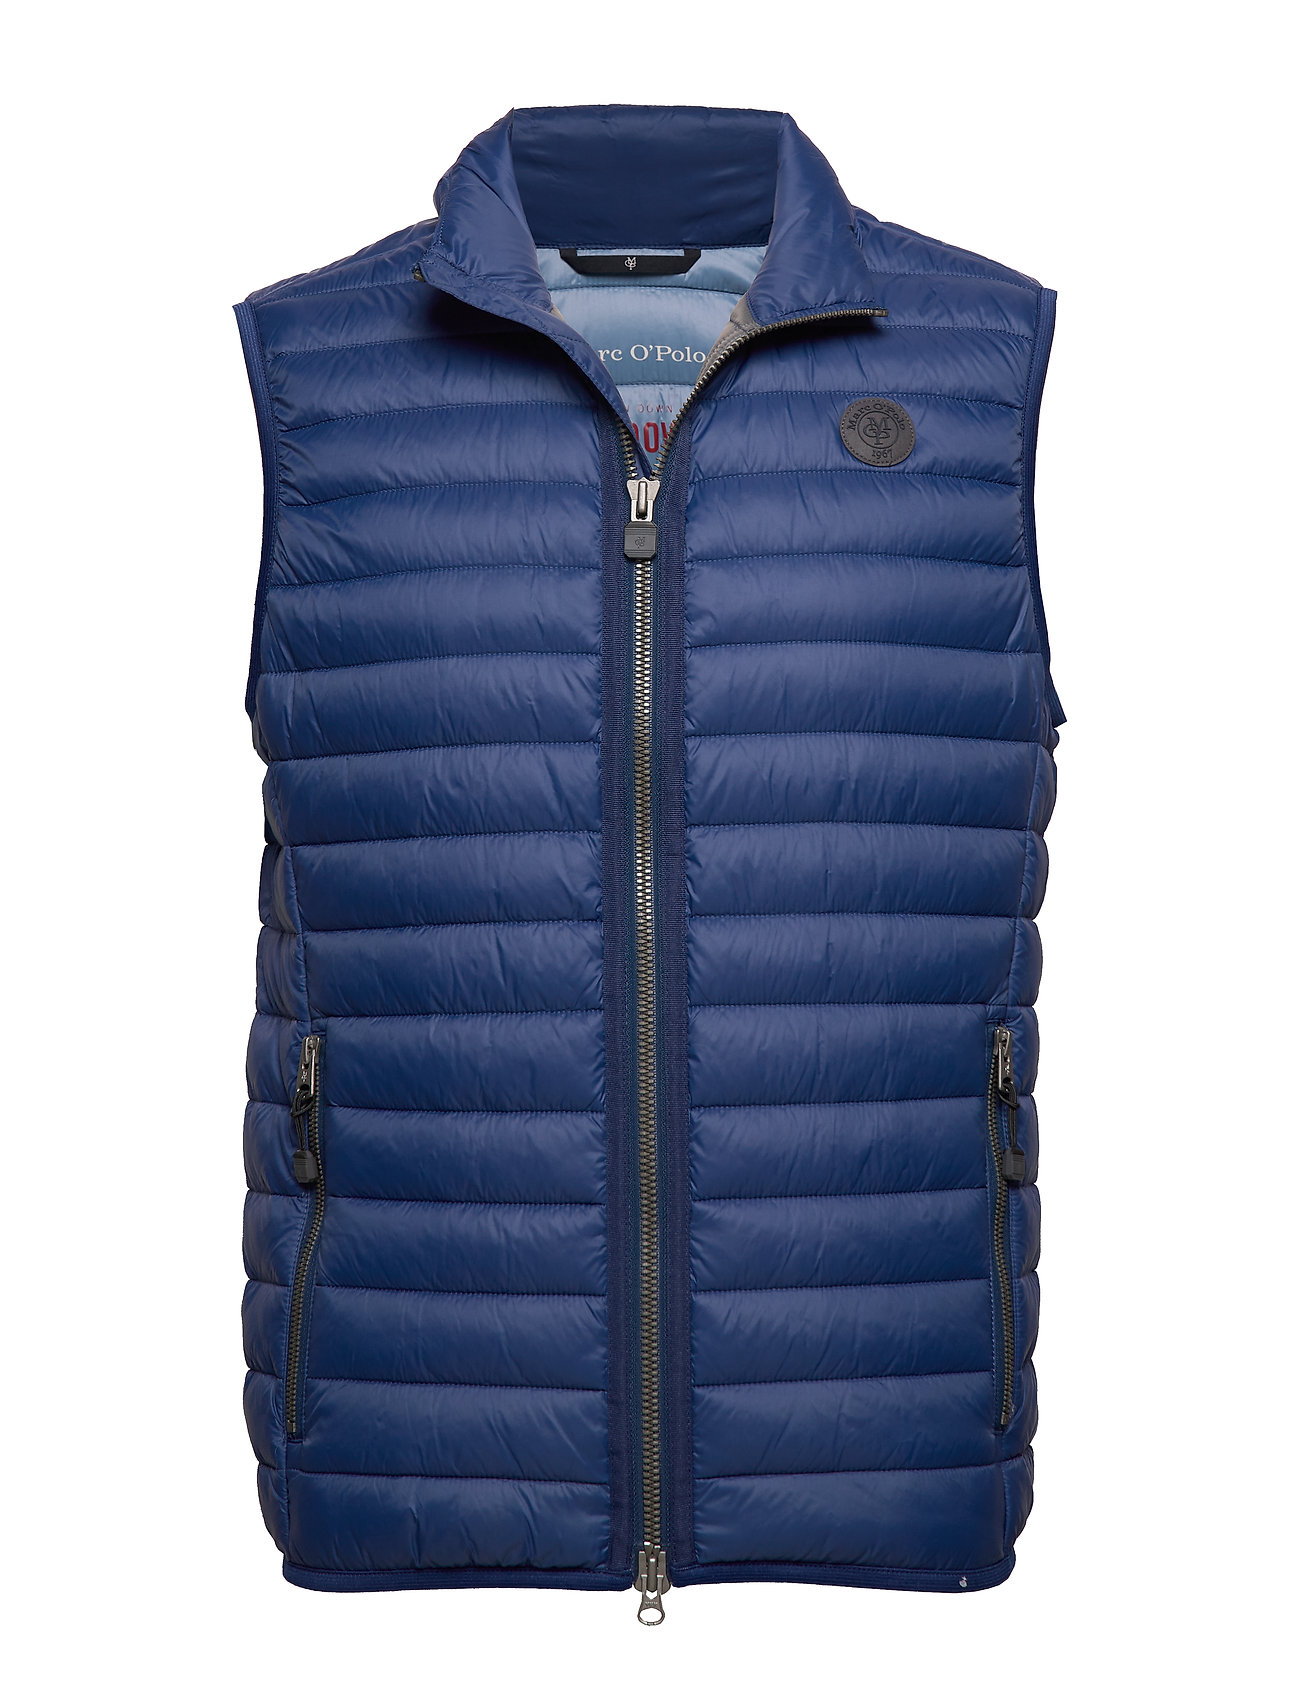 Marc O'Polo SDND Vest, regular fit, sleeveless, - NAVY PEONY